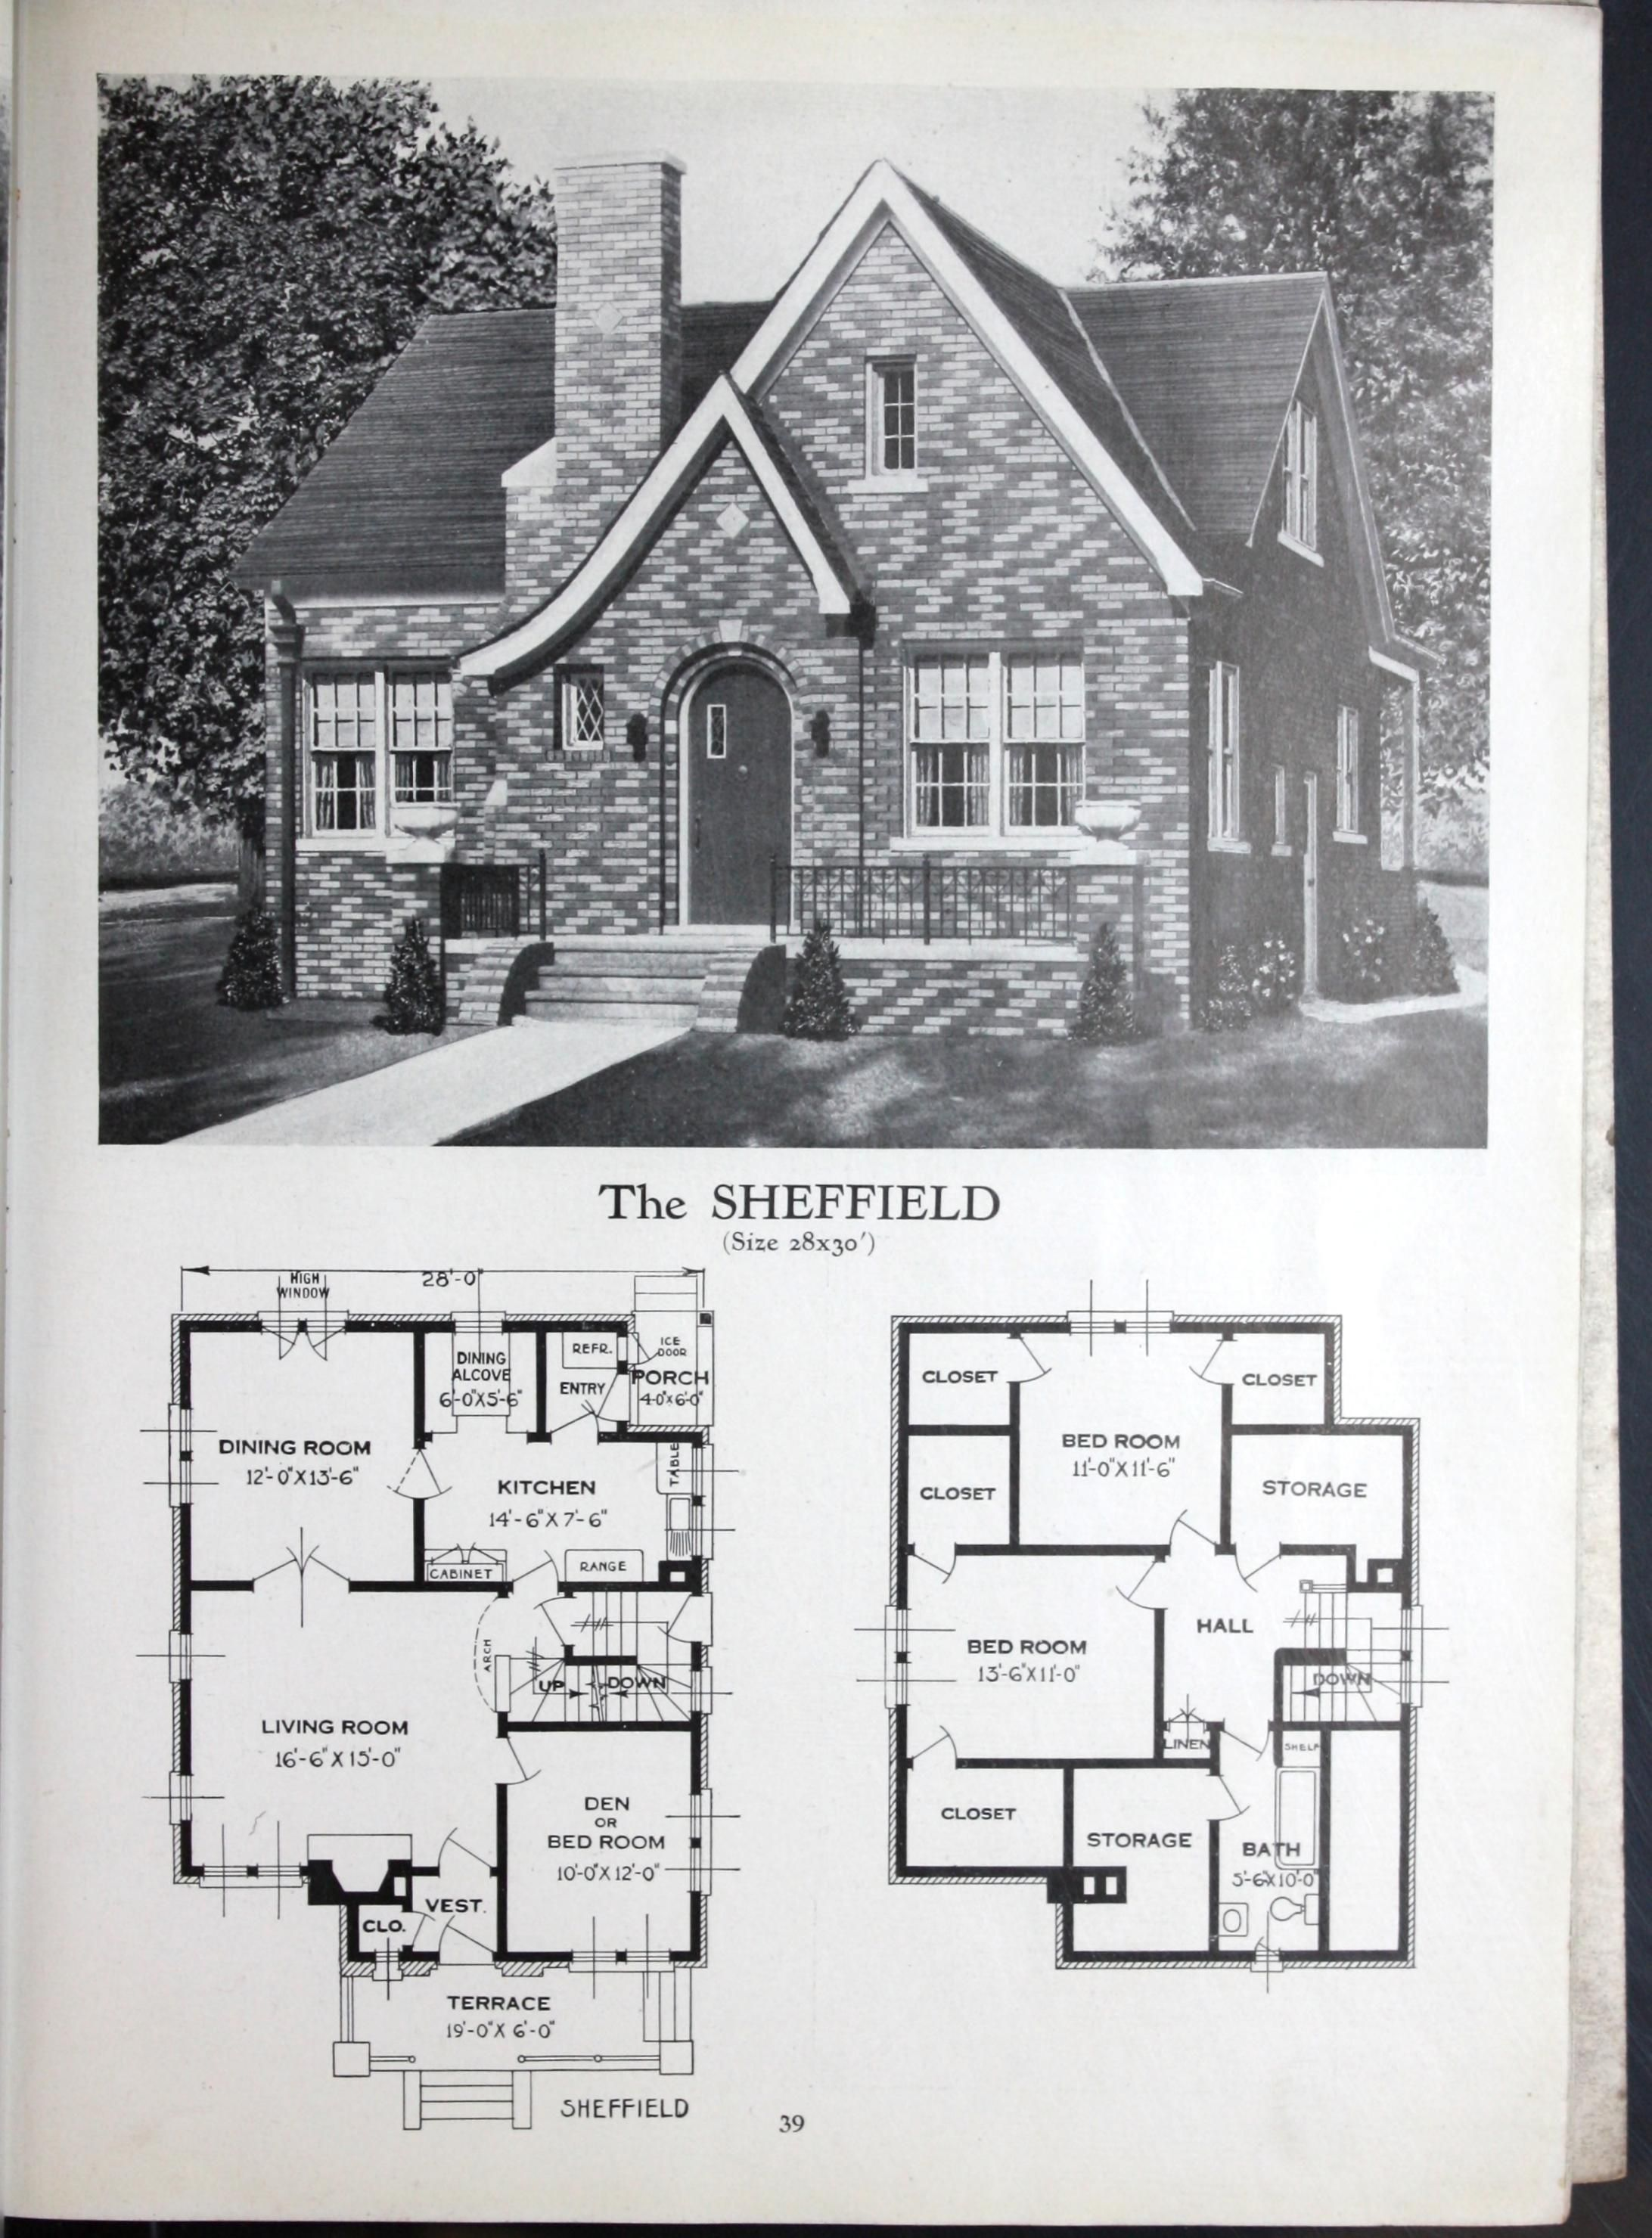 Vintage Home Plans House Plans With Pictures Cottage Style House Plans Vintage House Plans